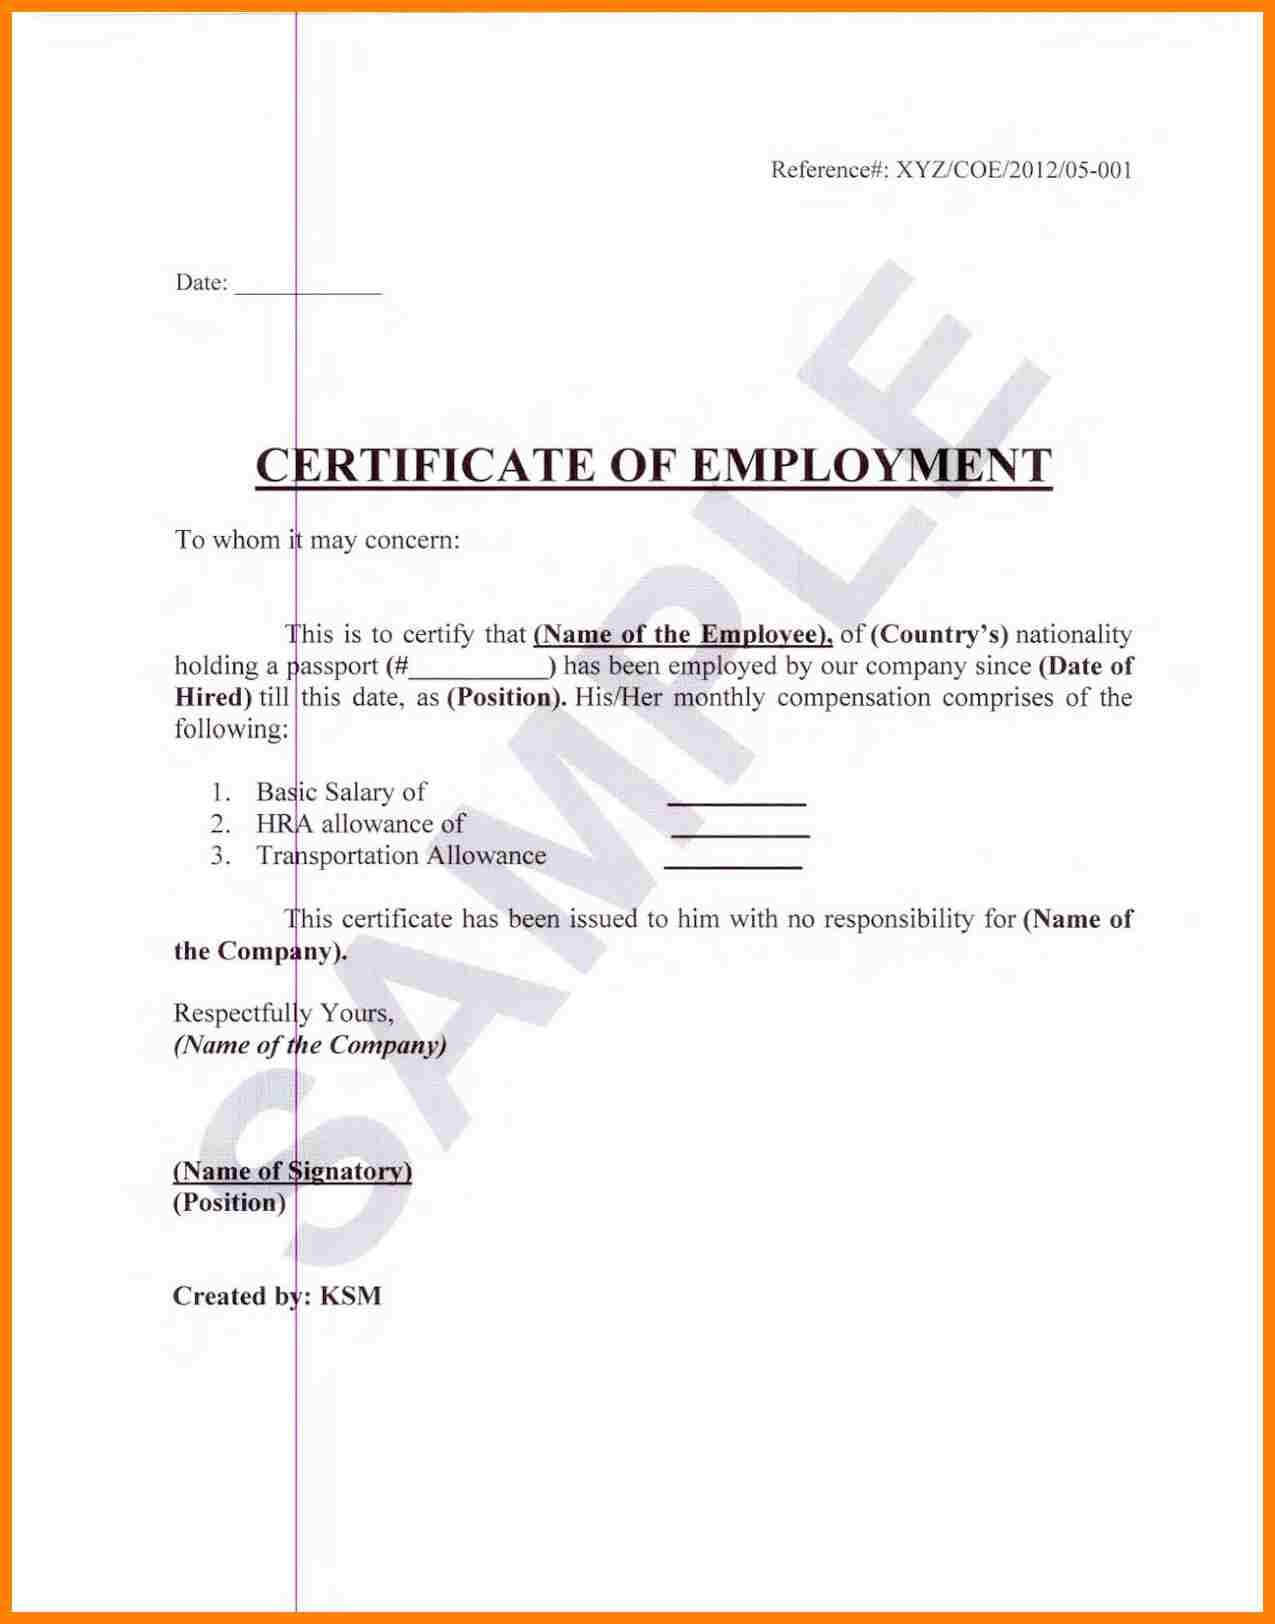 Sample Certification Employment Certificate Tugon Med Clinic Throughout Certificate Of Employment Template